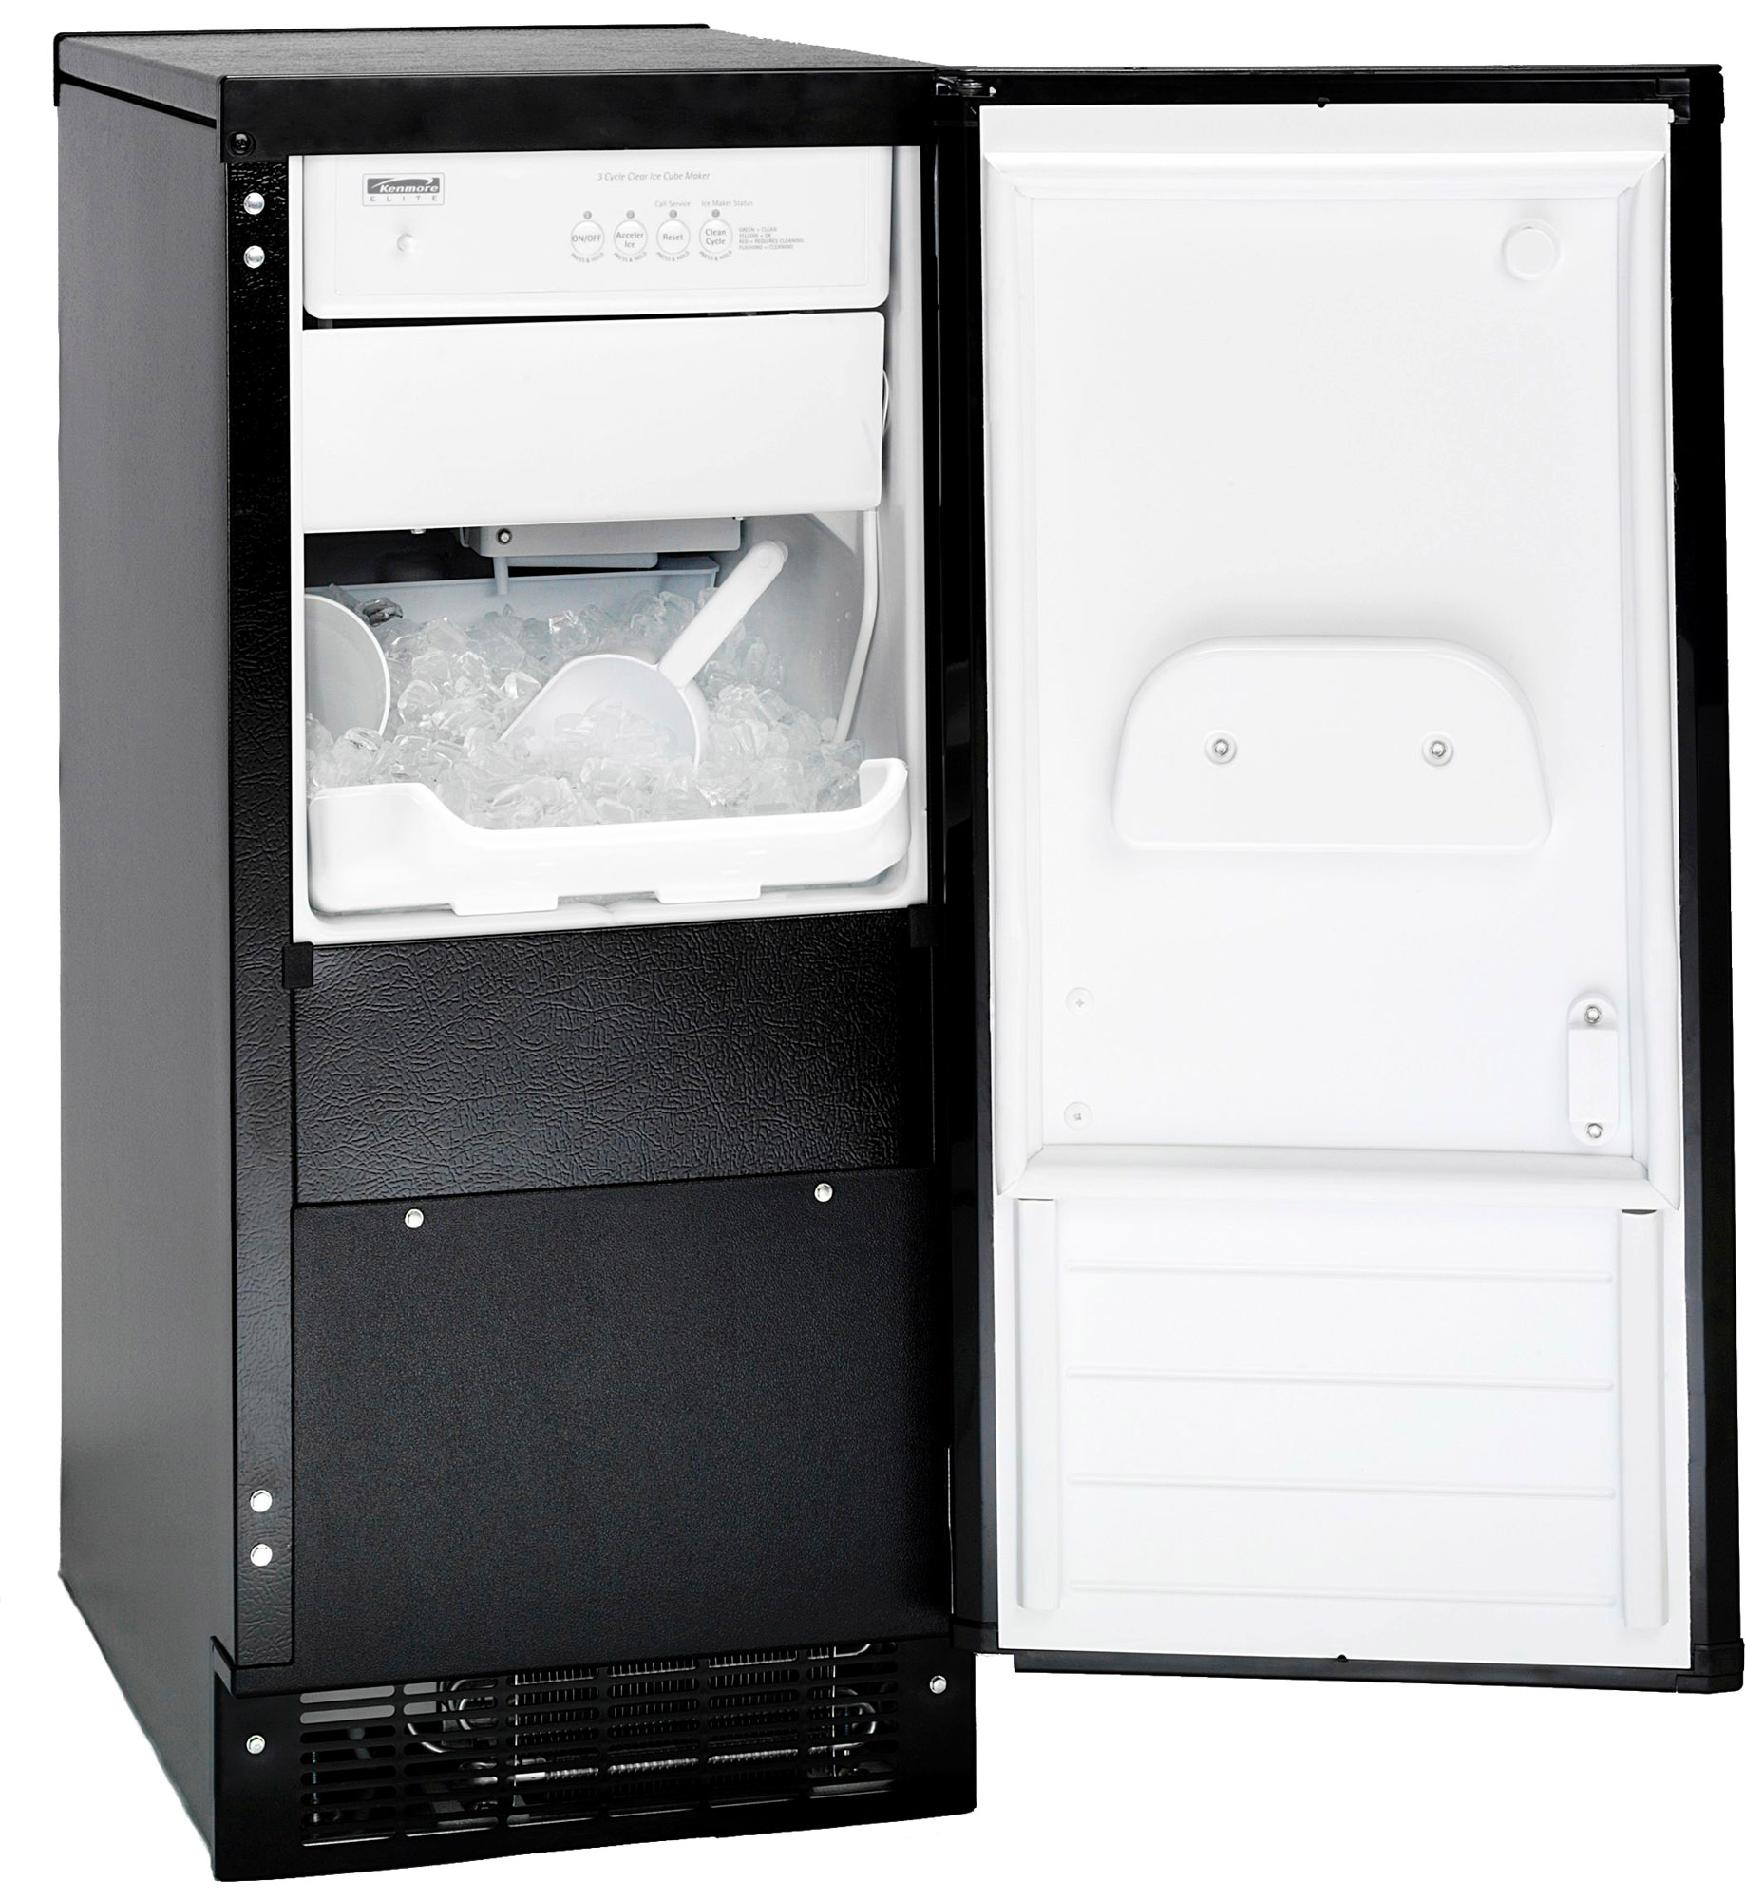 Kenmore Built-In 51 lb. Capacity Ice Maker Freezer - Black